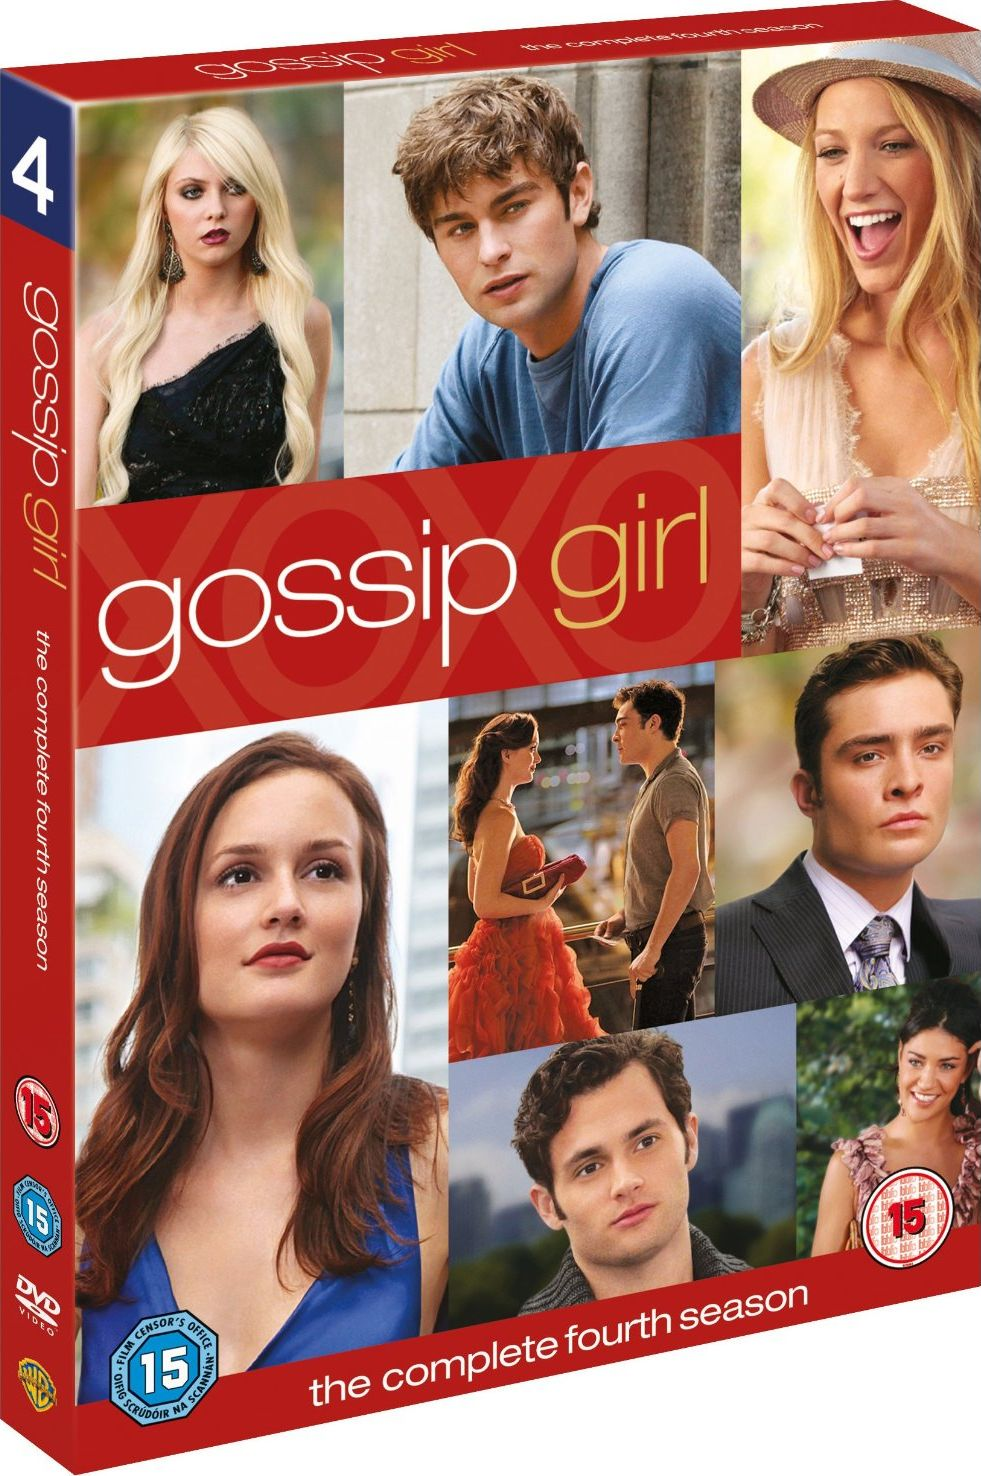 Gossip girl s02e17 megaupload pity, that